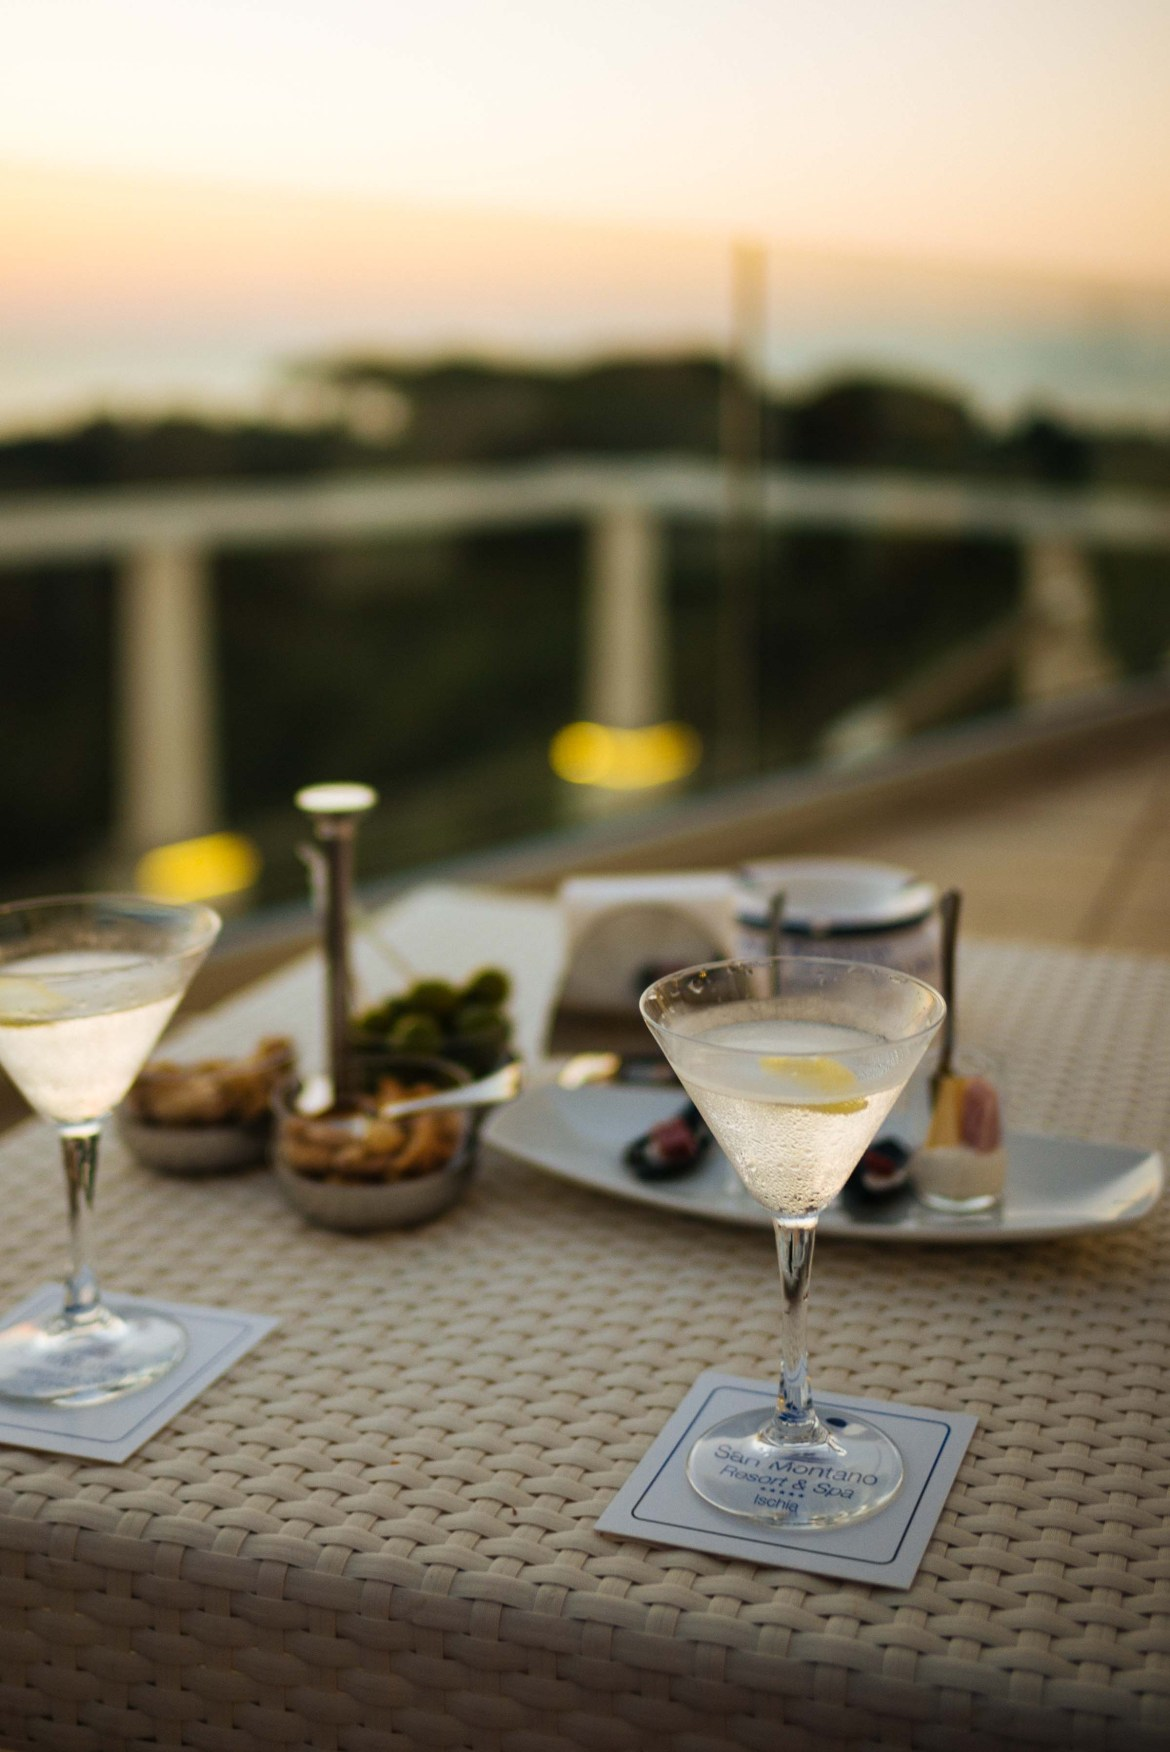 Cocktails or gin martinis before dinner in Ischia is the perfect way to start a summer   thetasteedit.com #italy #travel #gin #martini